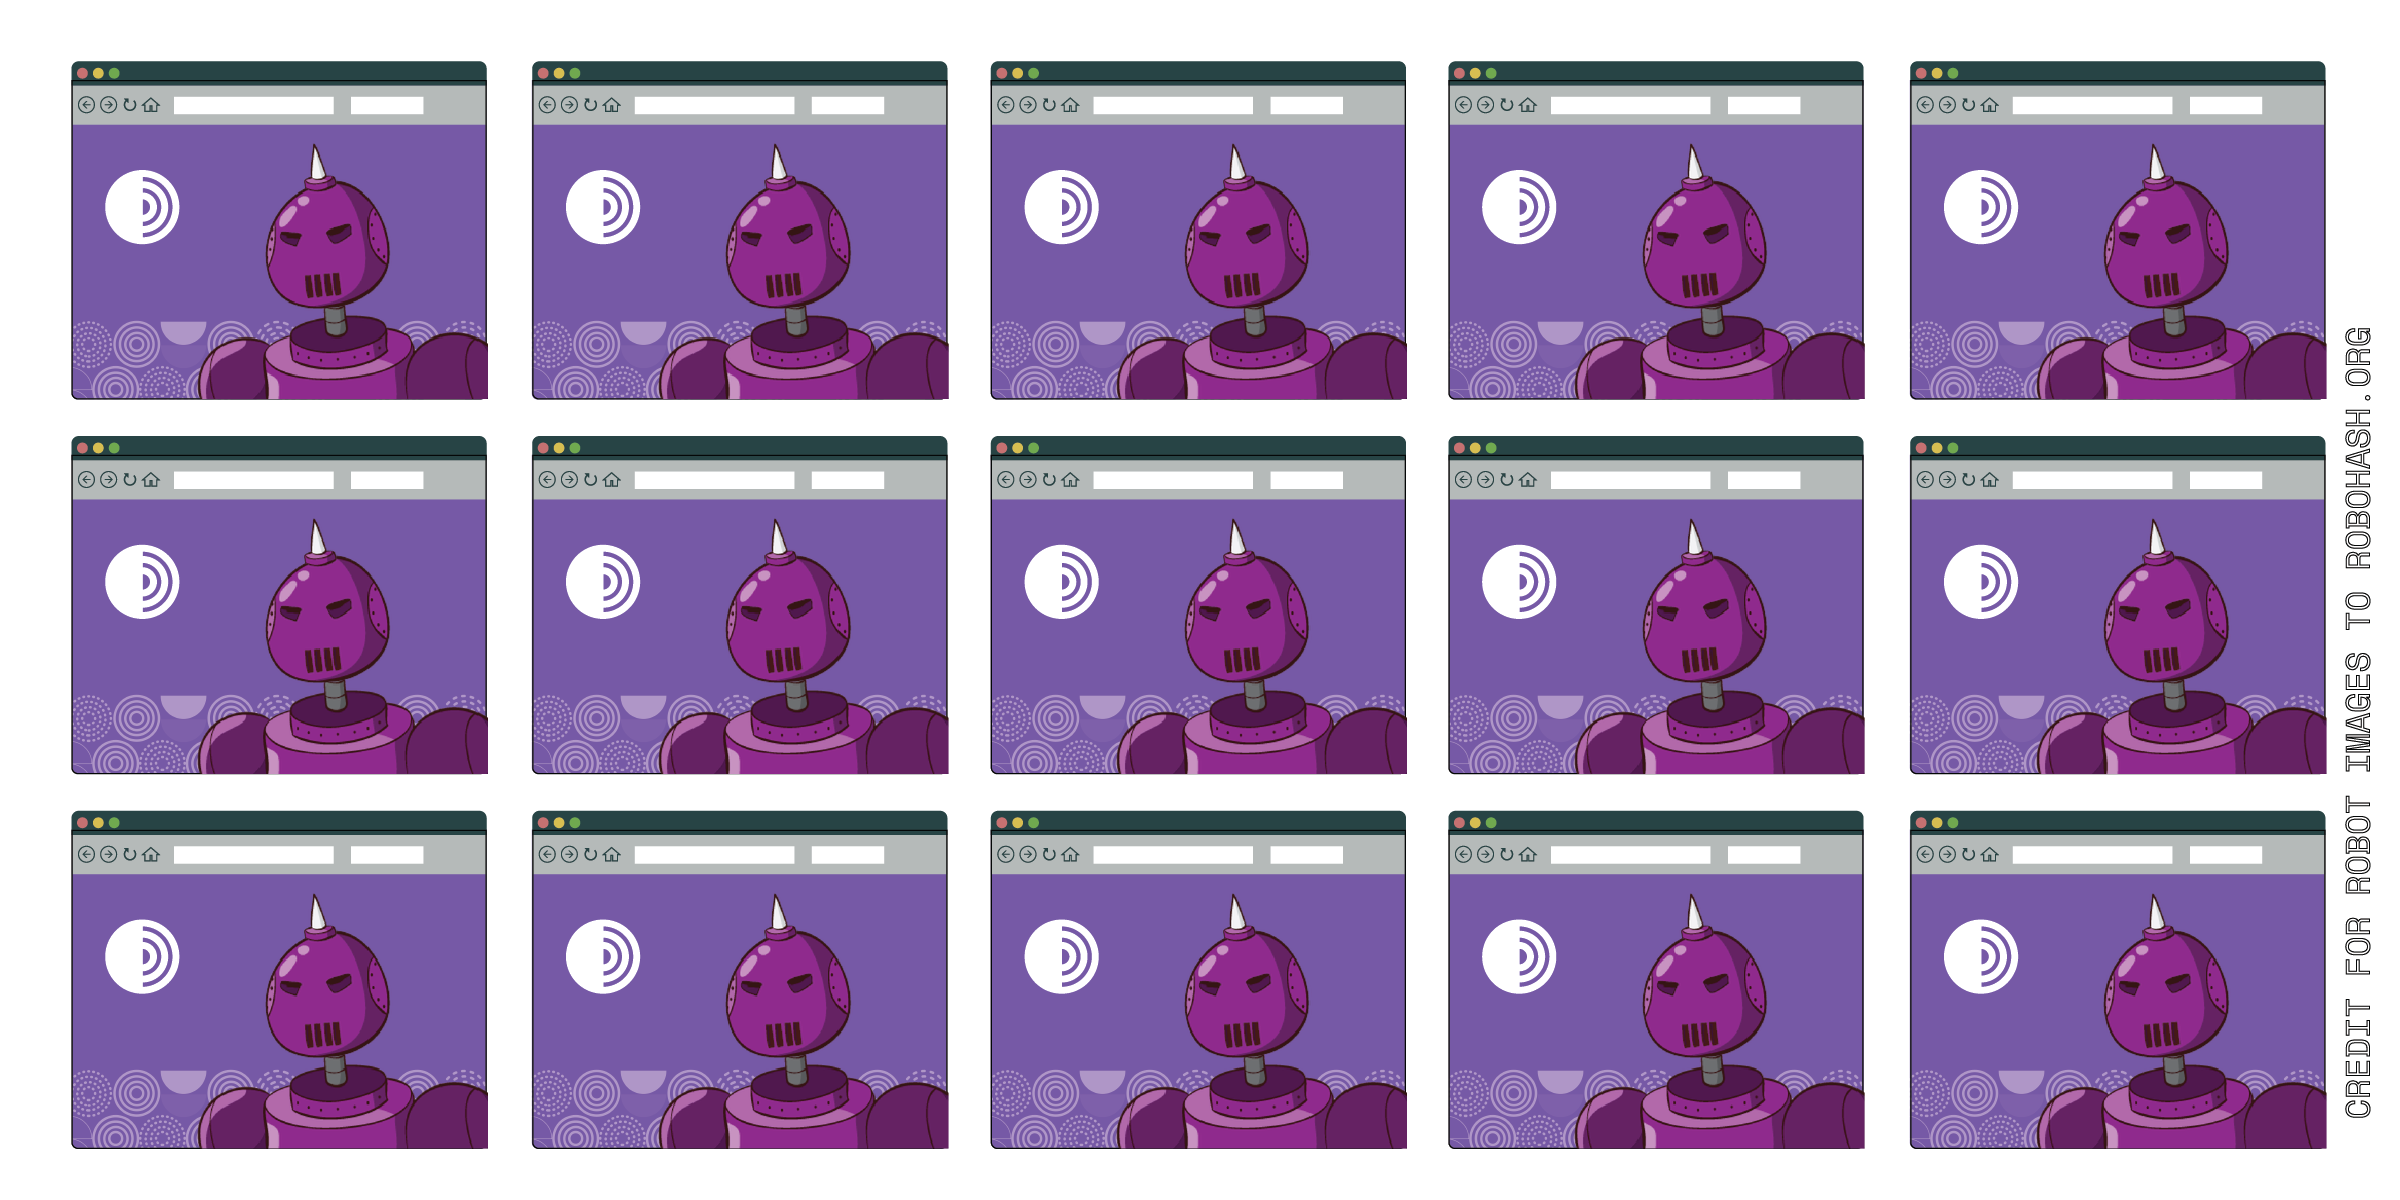 A three by five grid of Tor Browsers with purple robots that all look the same.